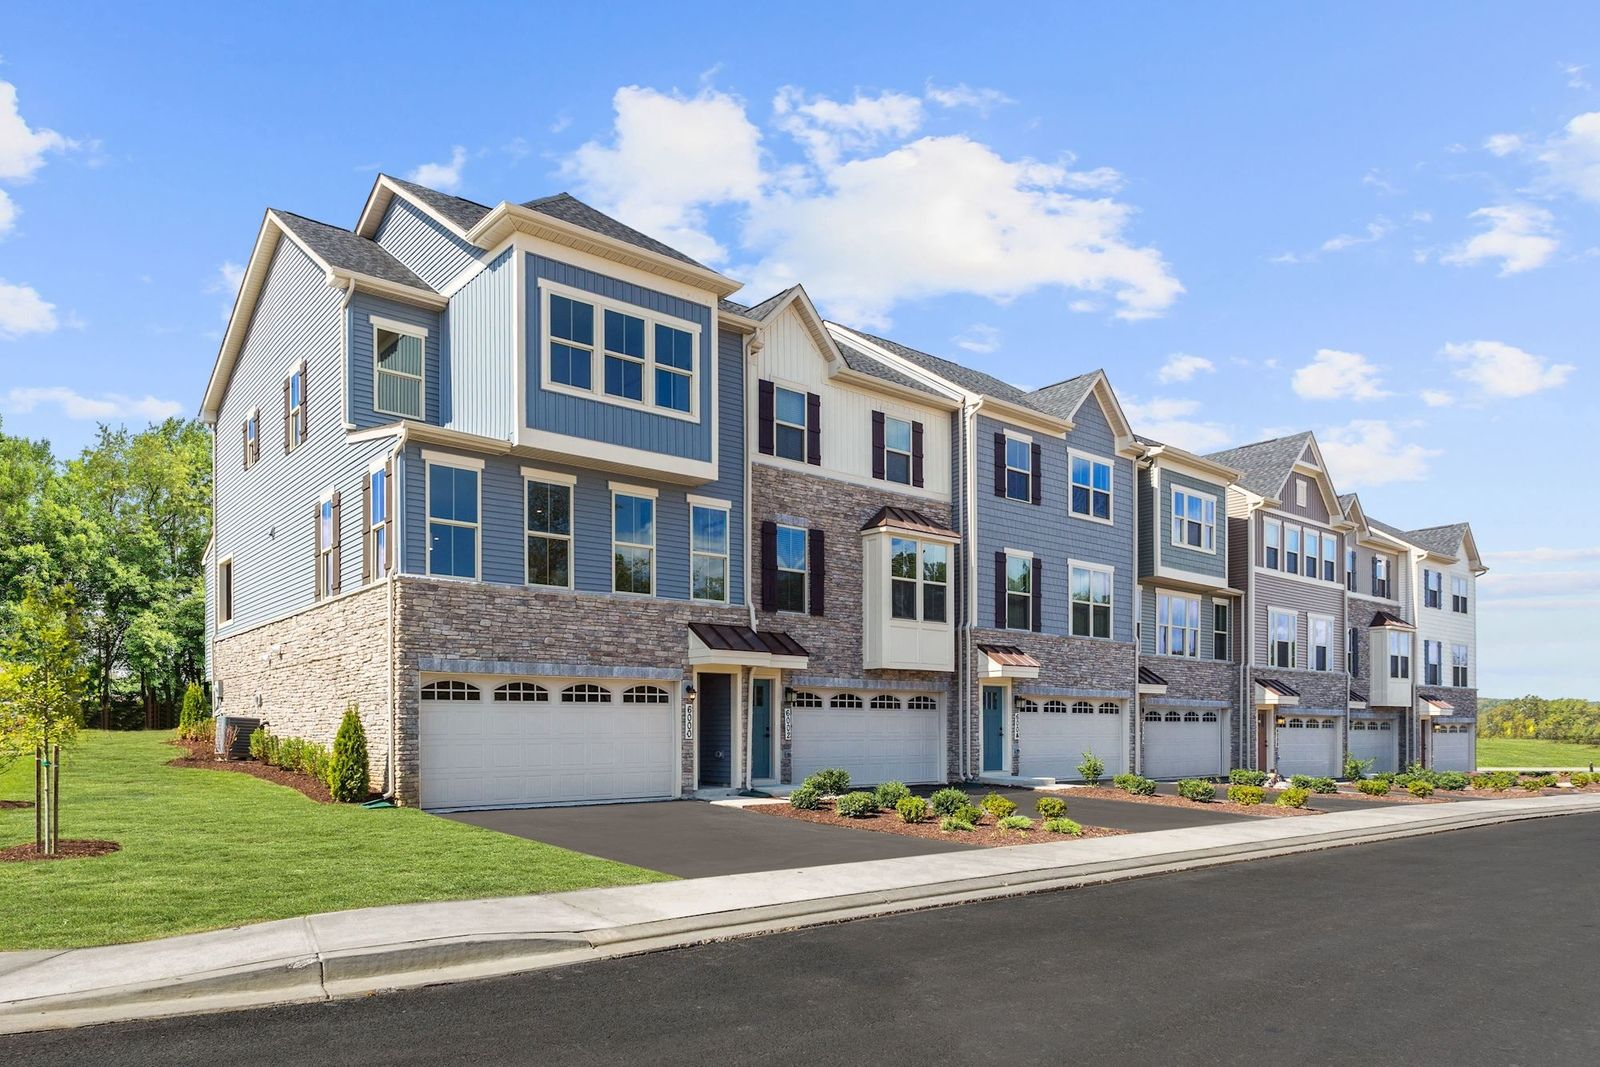 Welcome to Mountain Ridge:Spacious new 2 or 3 bedroom townhomes with 2-car garages and outdoor space. A-rated schools and only 1 mile to shopping, dining, and commuter routes.Click here to schedule an appointment today!